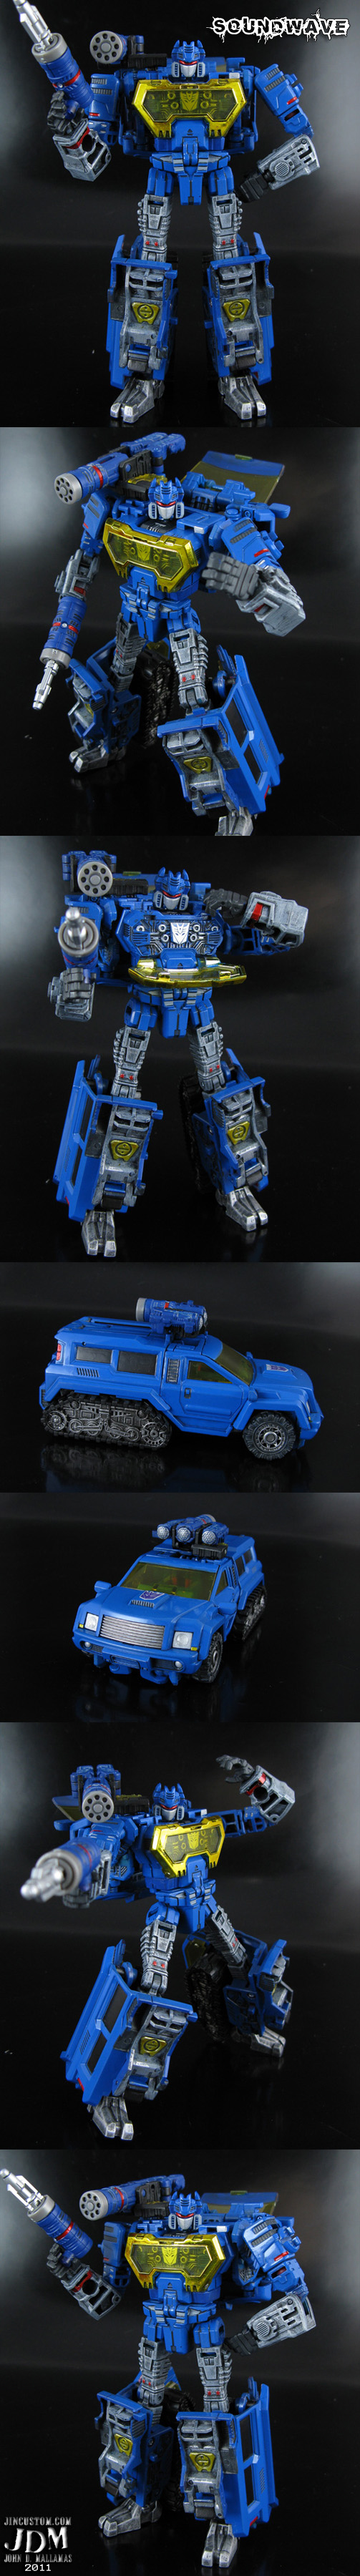 Generations Soundwave